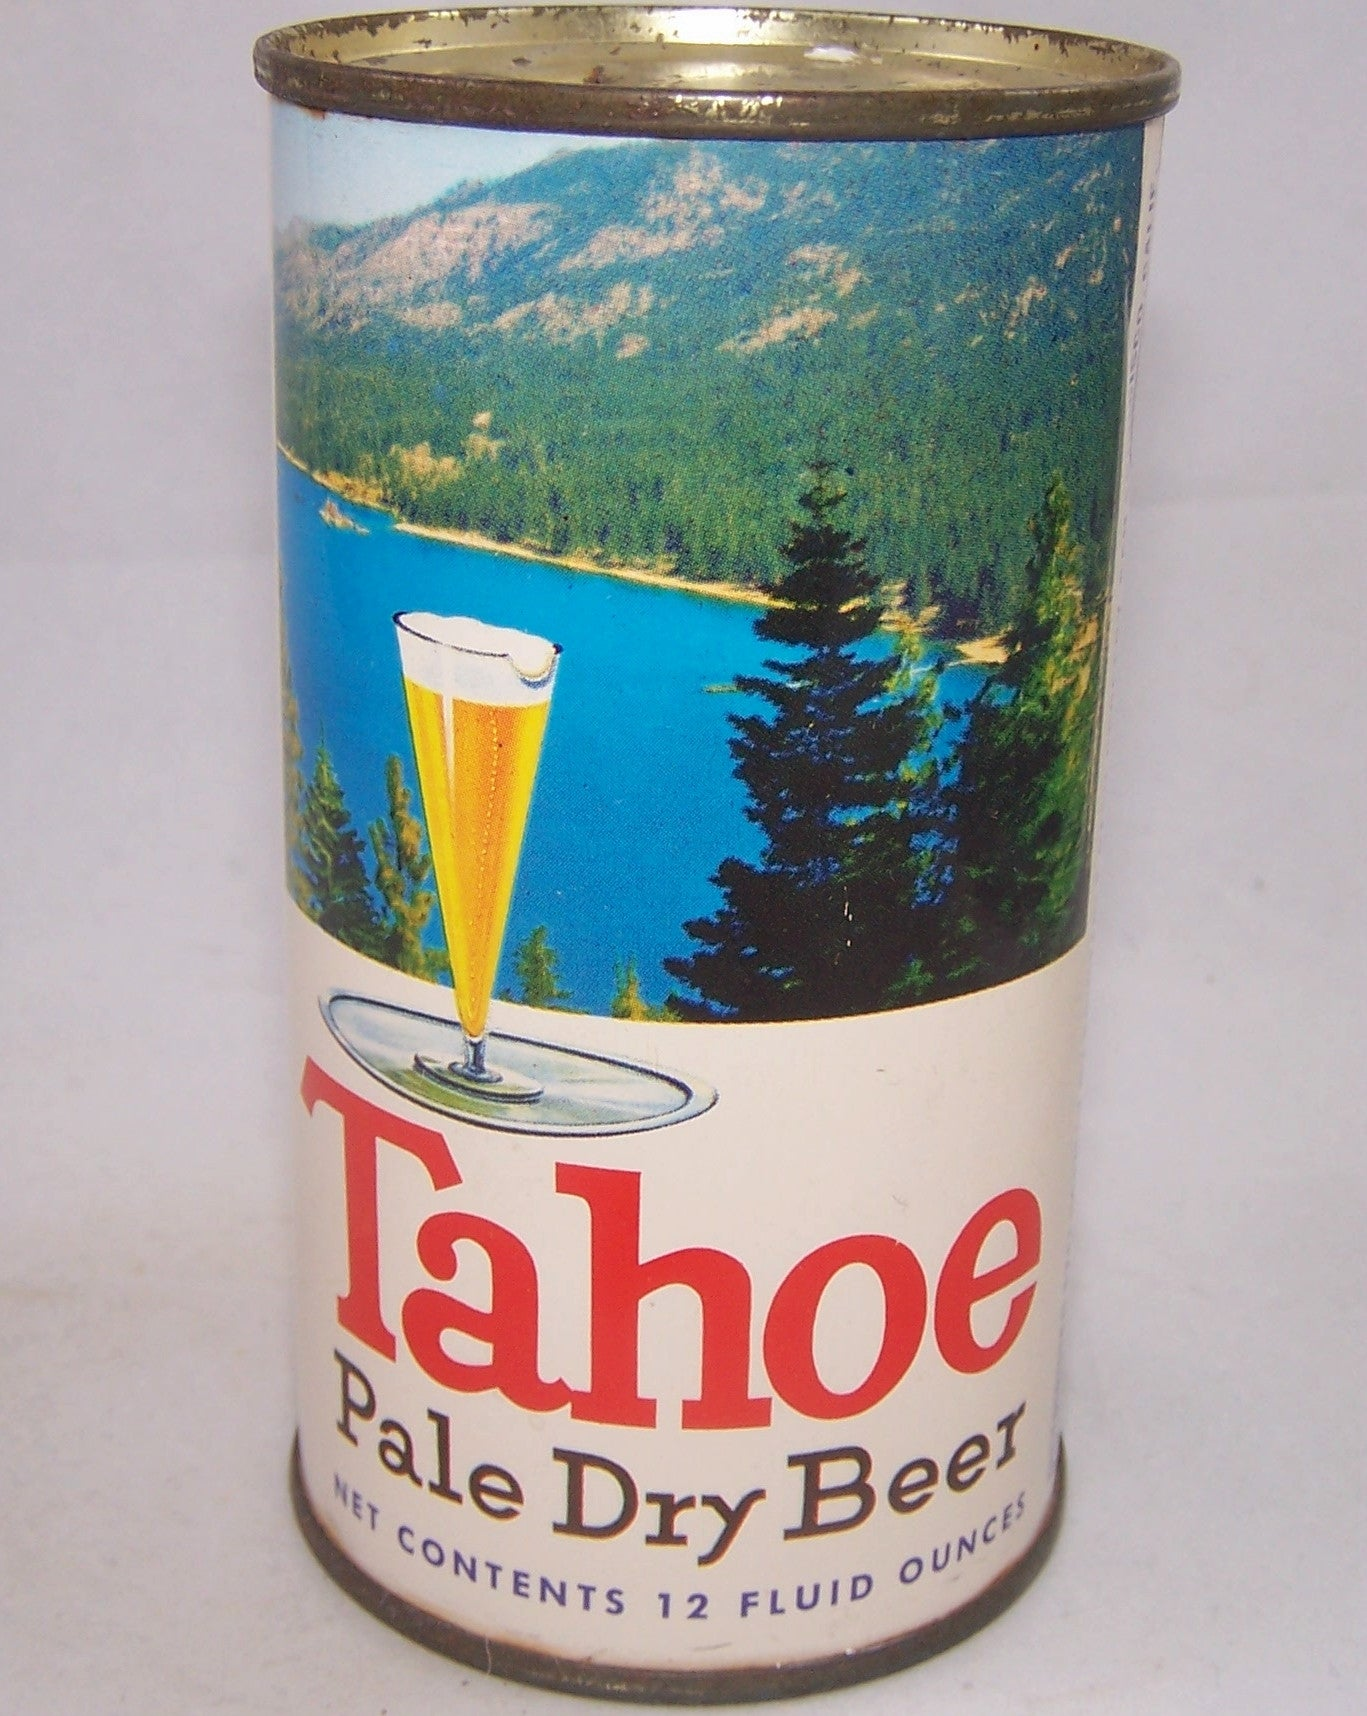 Tahoe Pale Dry Beer, USBC 138-10, Grade 1/1+ Sold on 08/25/17